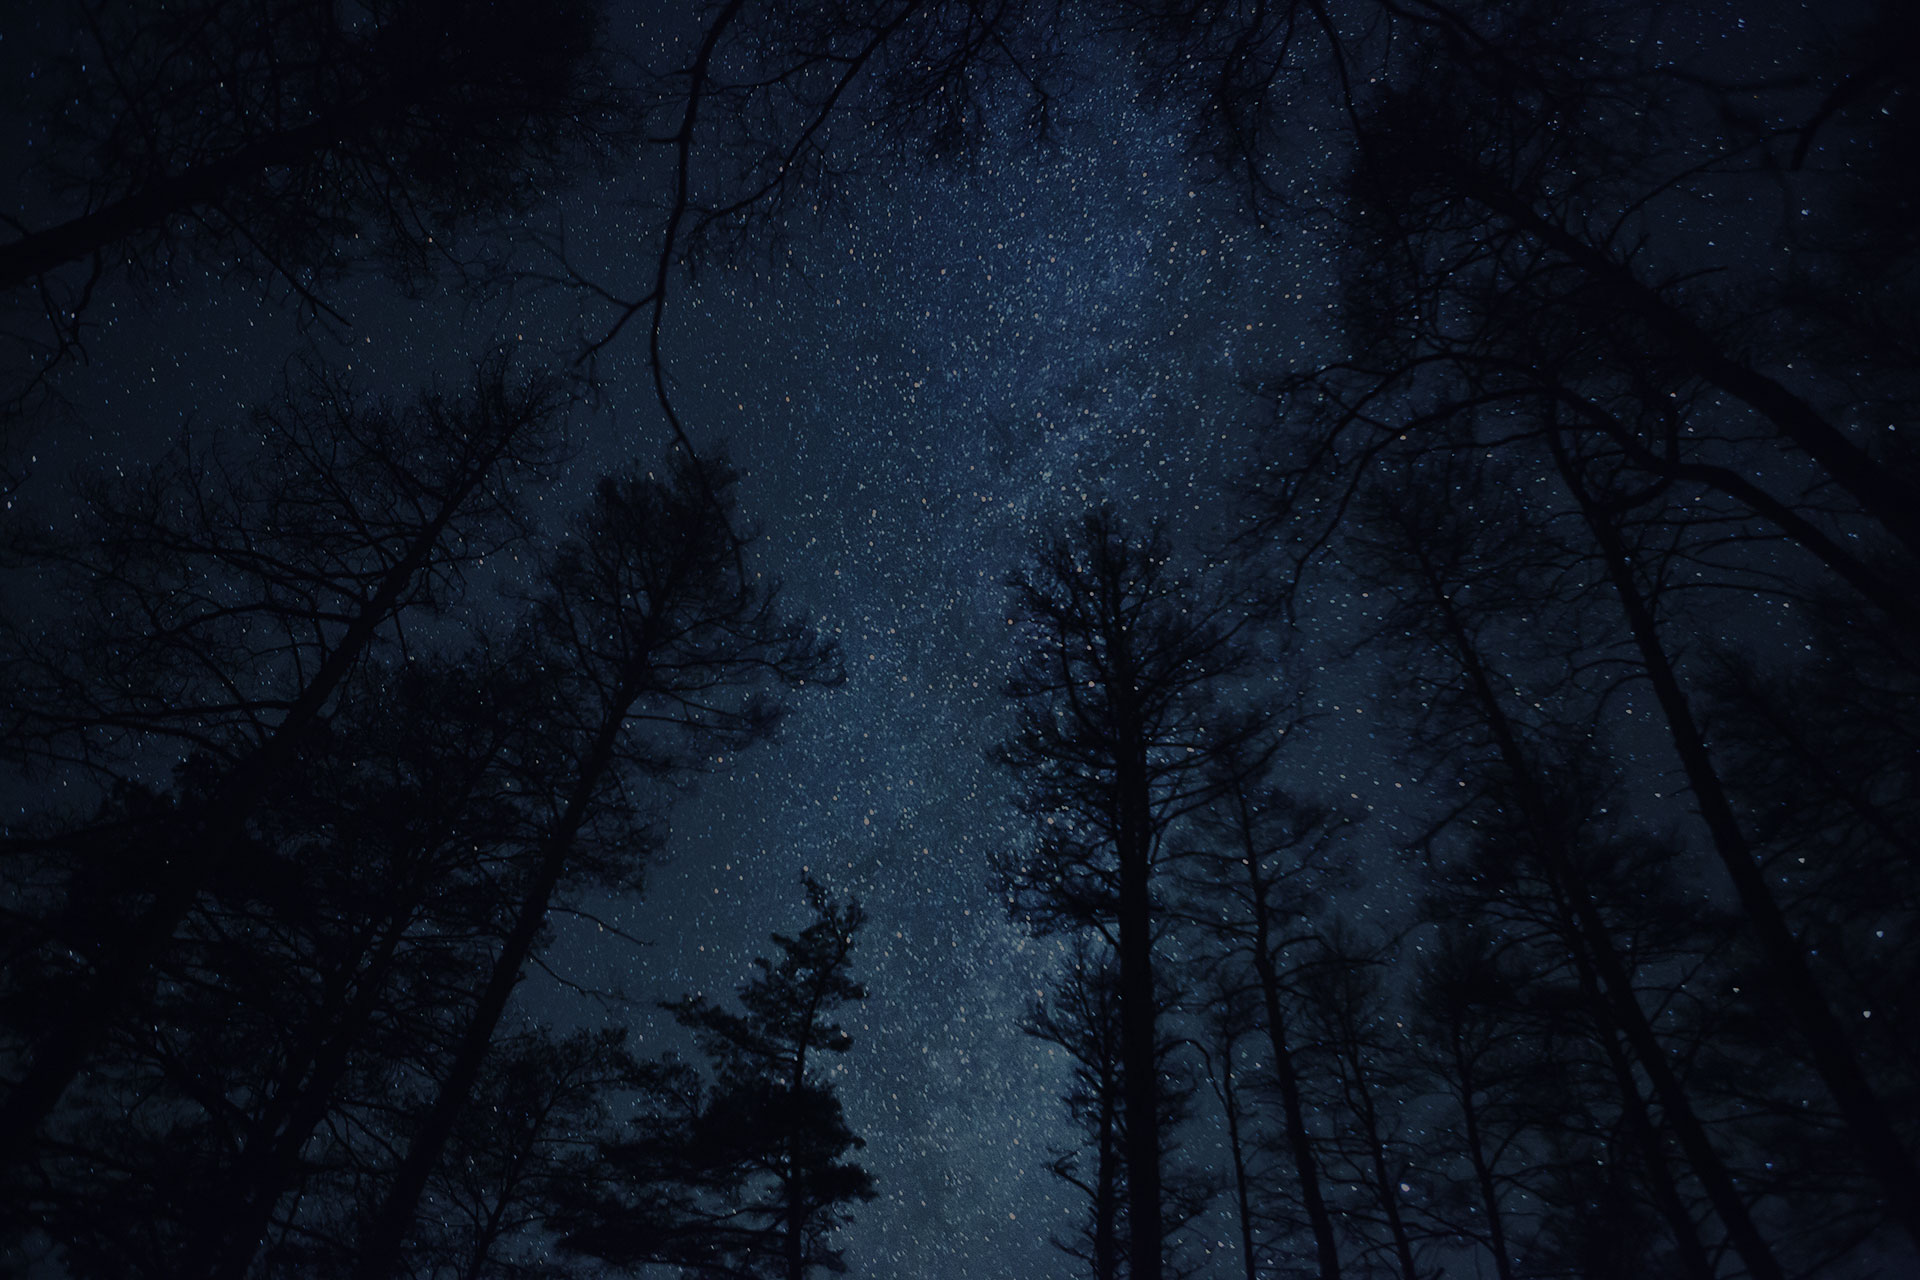 dark sky full of stars view through the tall pine tries